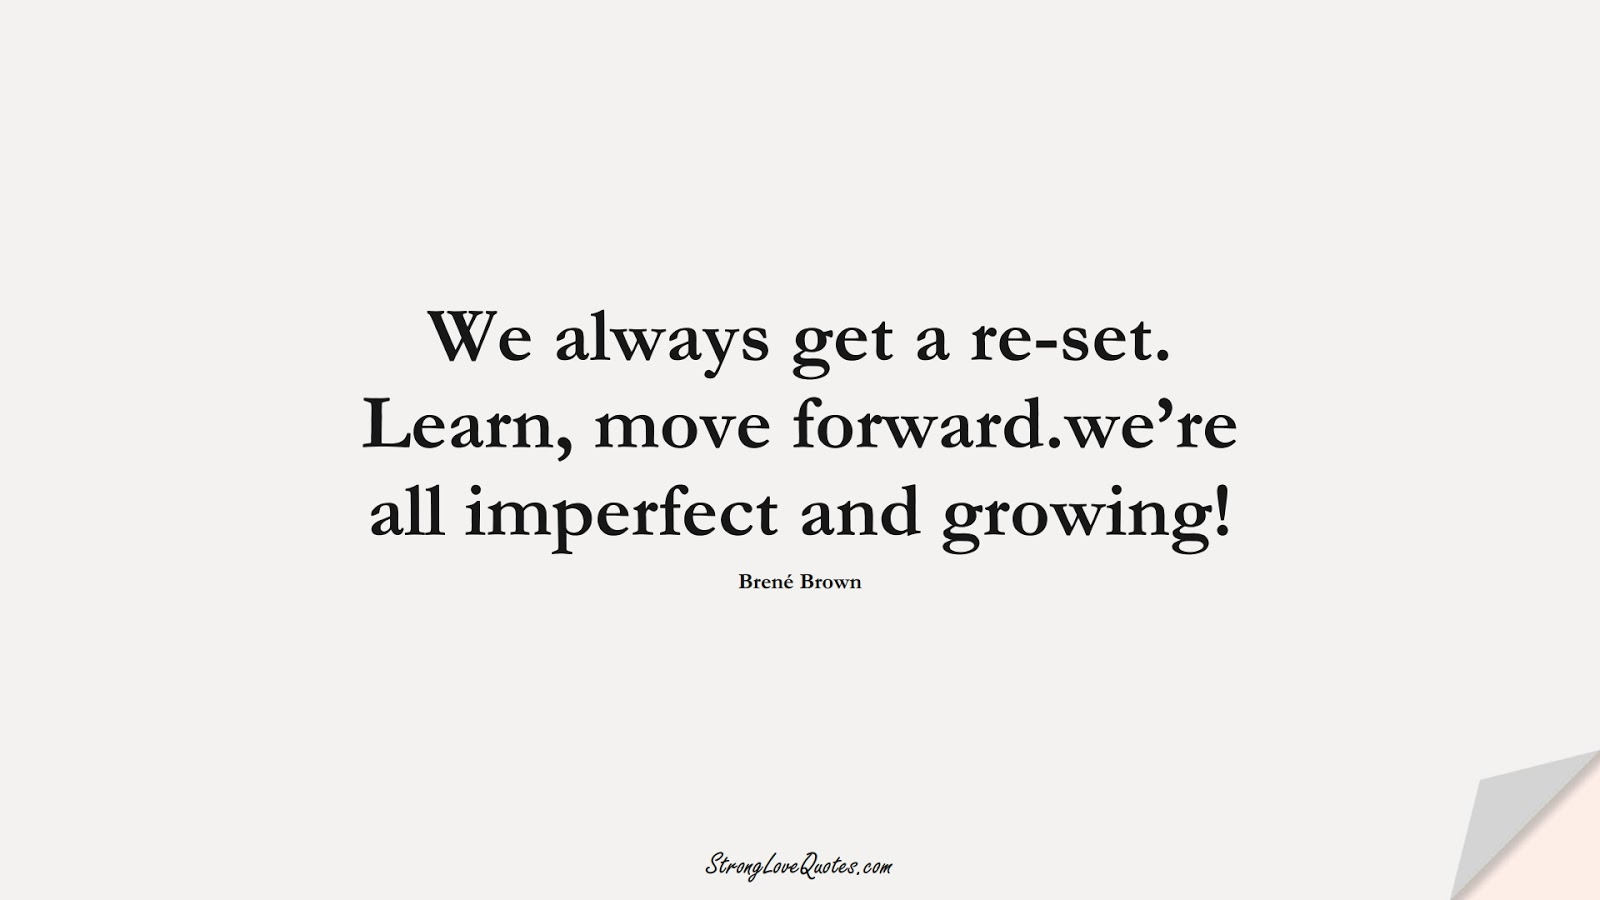 We always get a re-set. Learn, move forward.we're all imperfect and growing! (Brené Brown);  #LearningQuotes